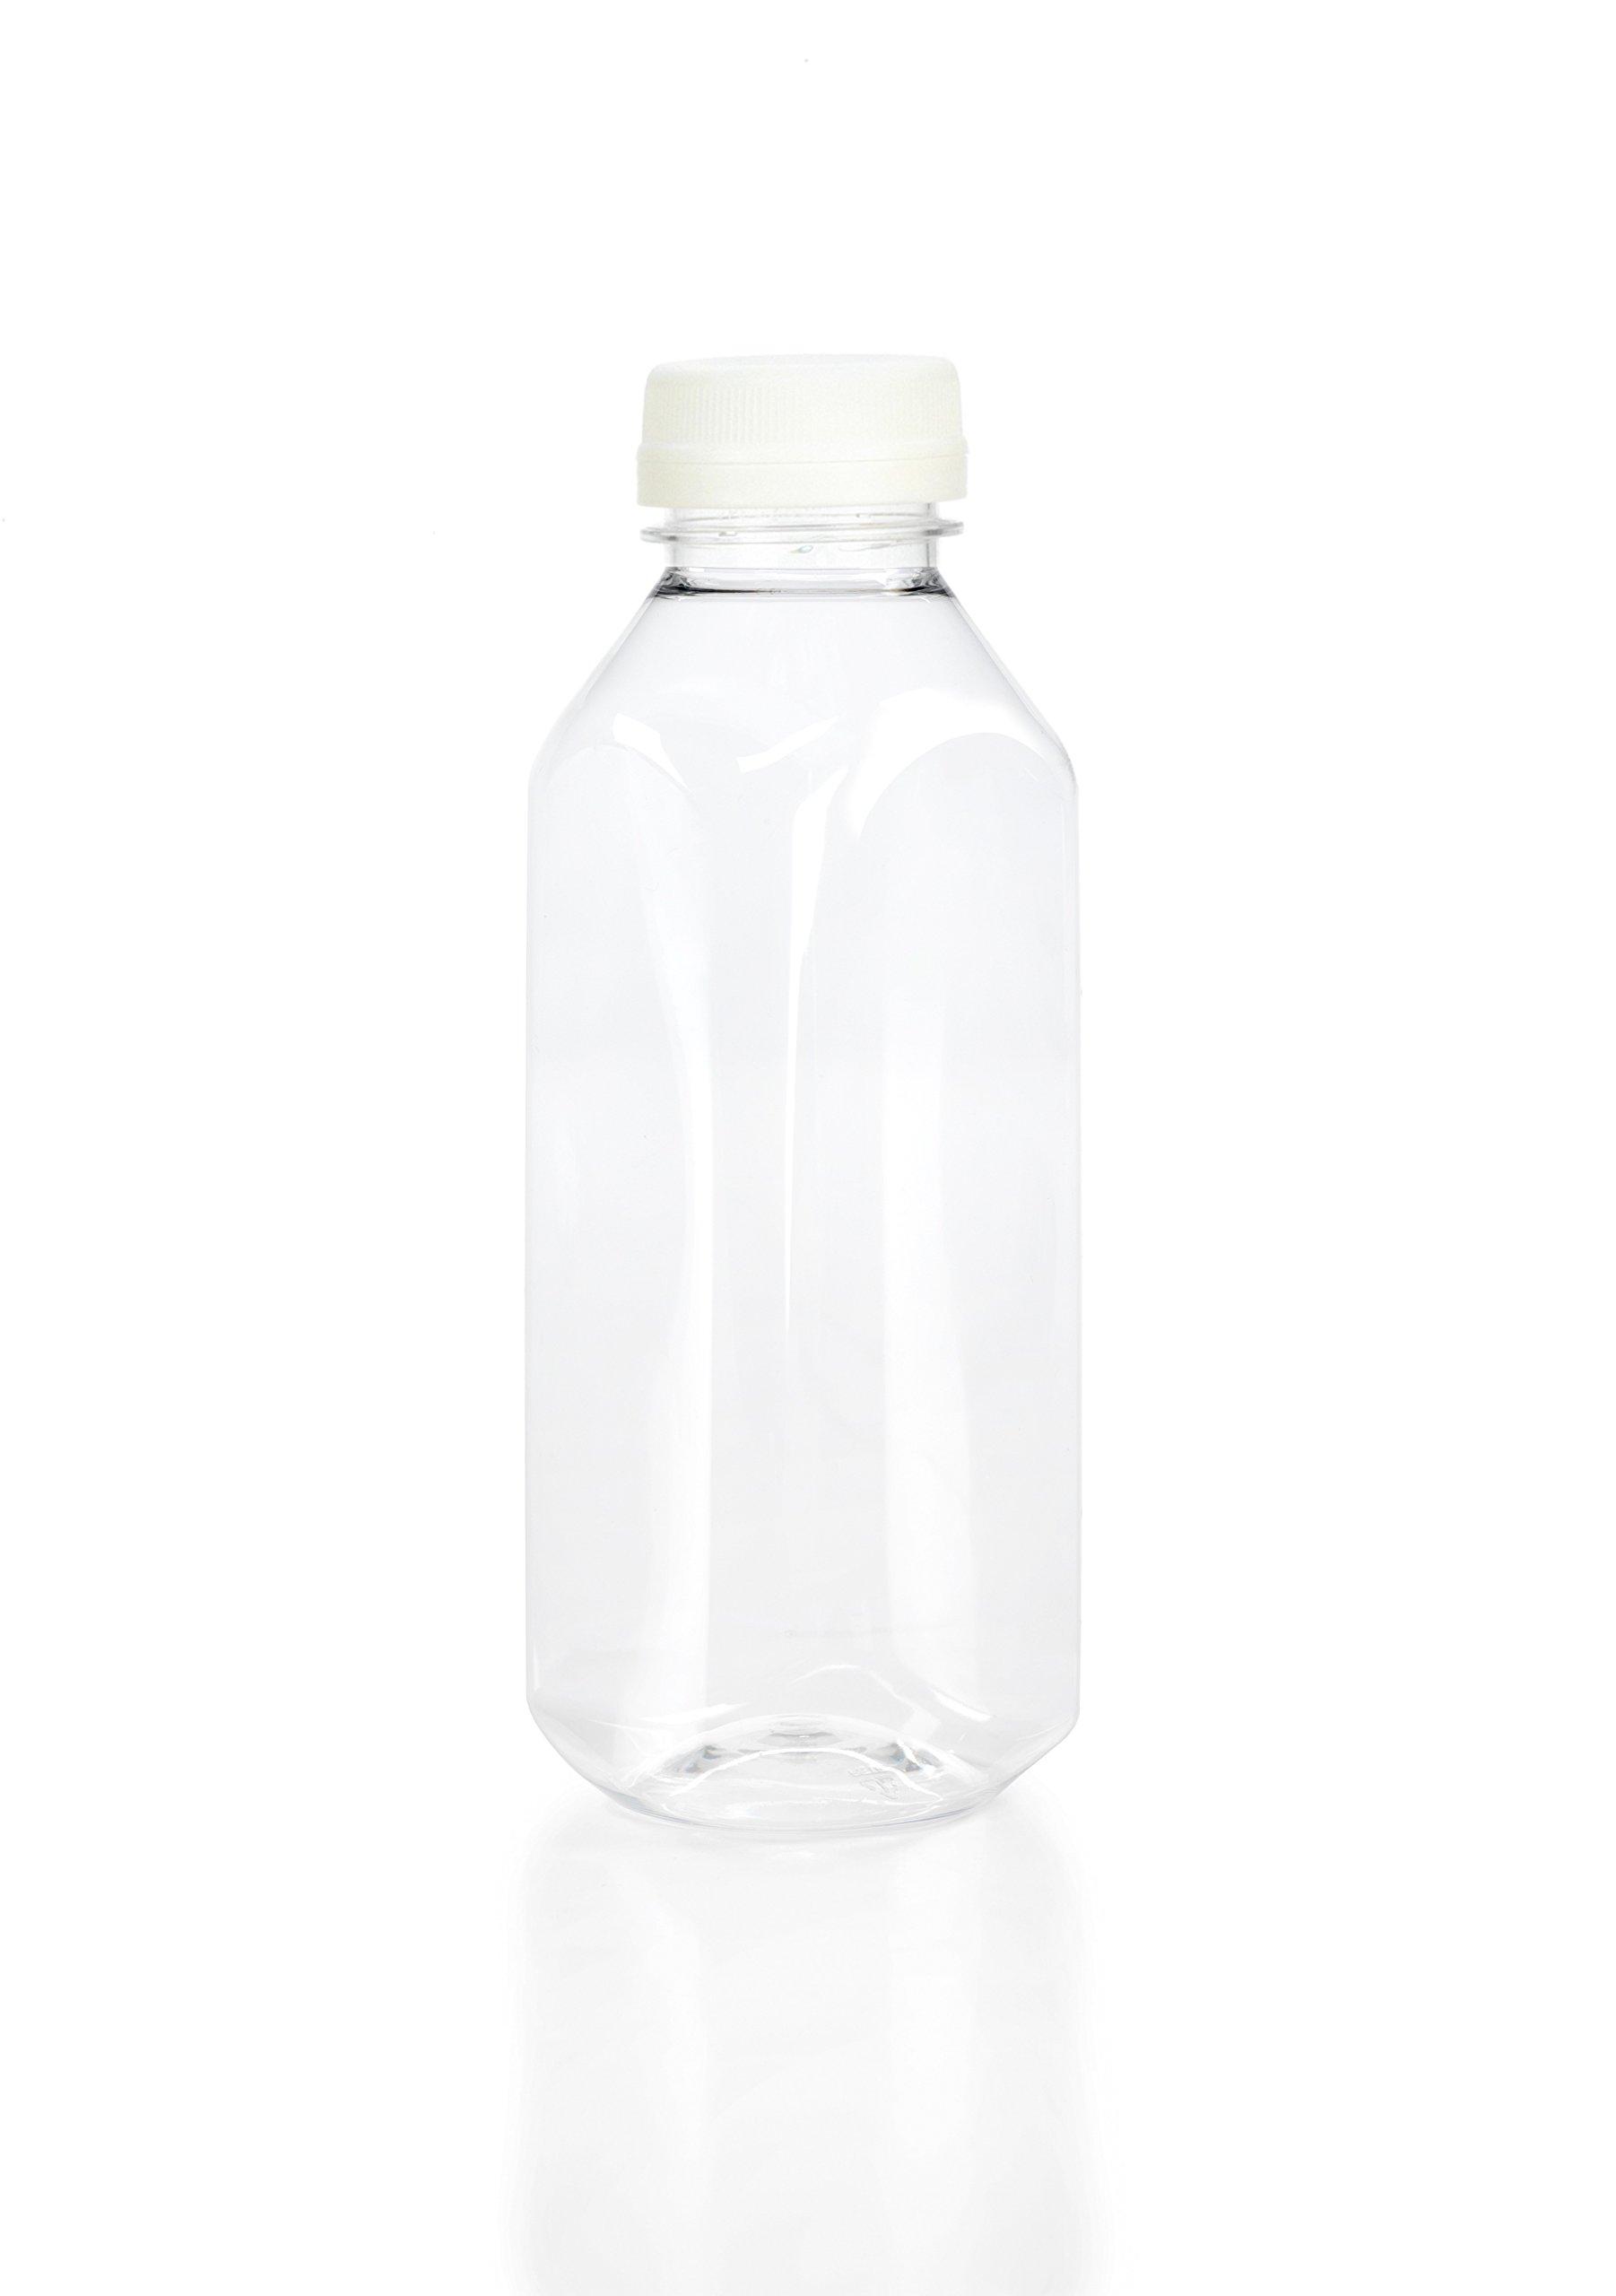 (12) 16 oz. Clear Food Grade Plastic Juice Bottles Square with White Caps 12/Pack by VTM